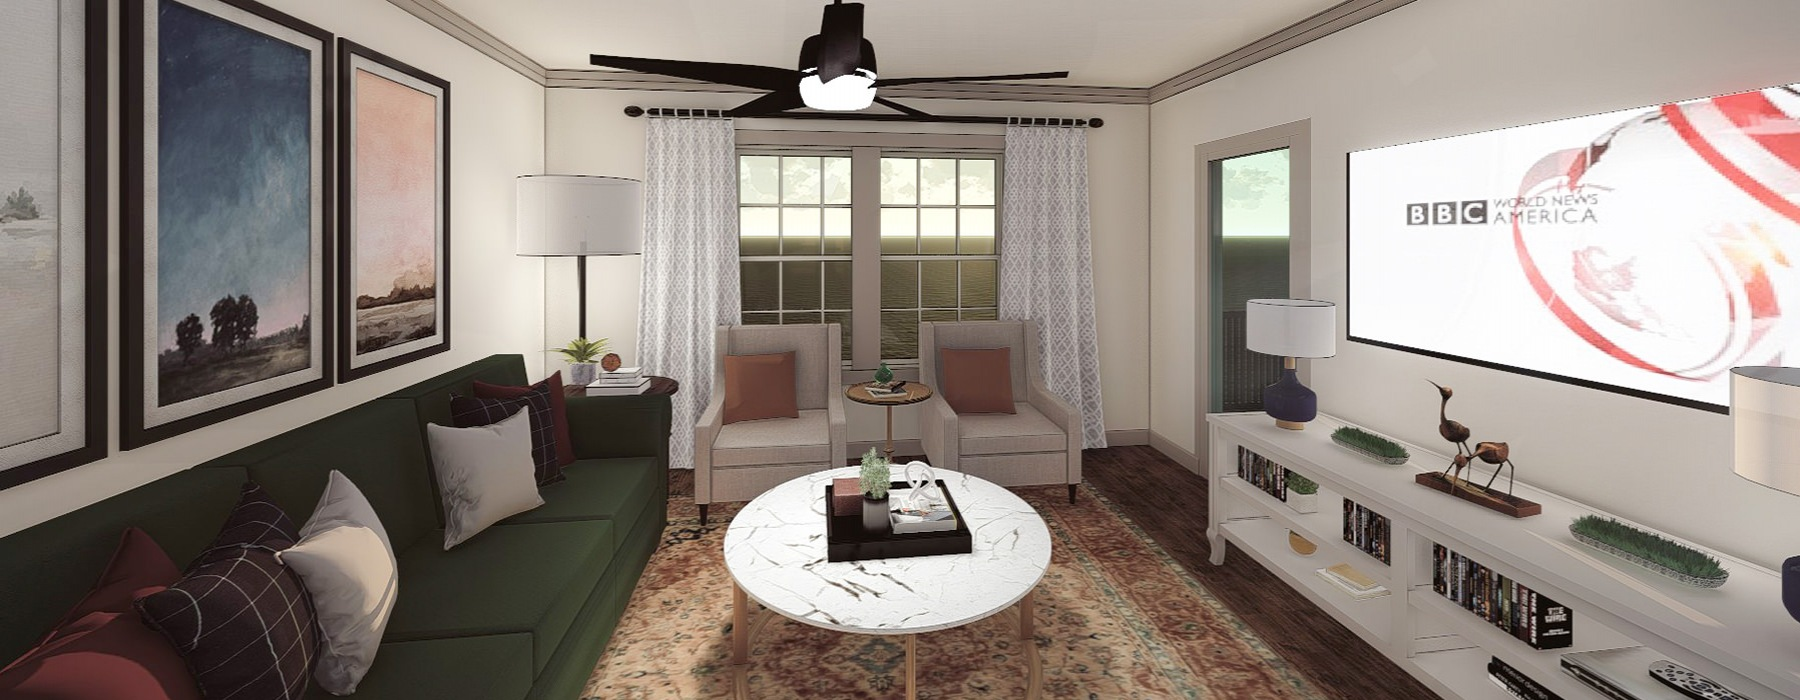 Spacious Living Area with large windows and ceiling fan